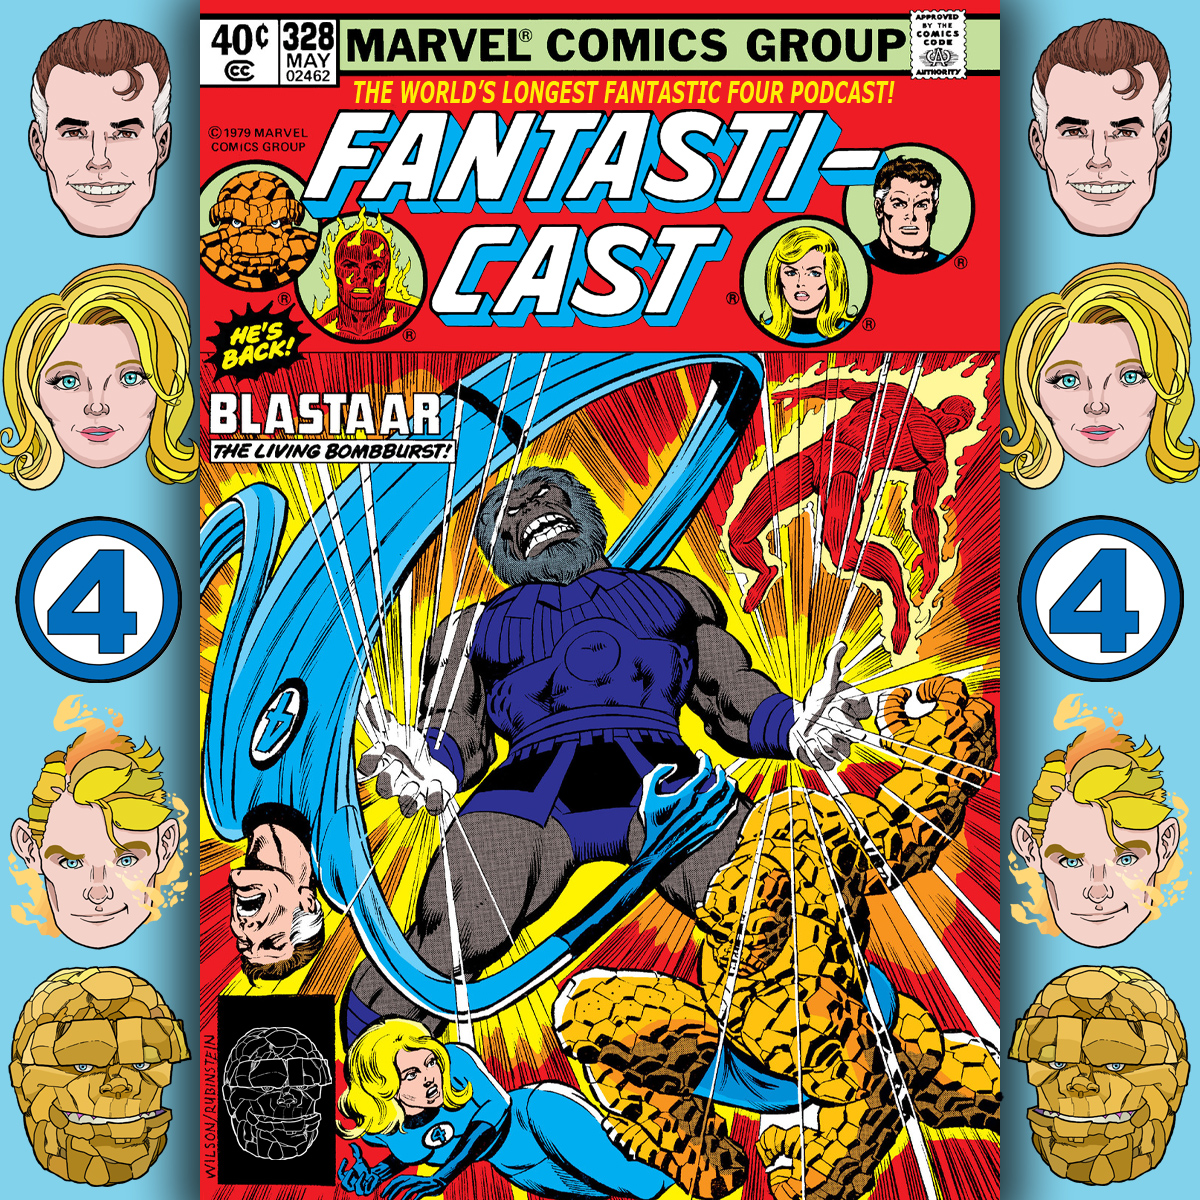 The Fantasticast Episode 328